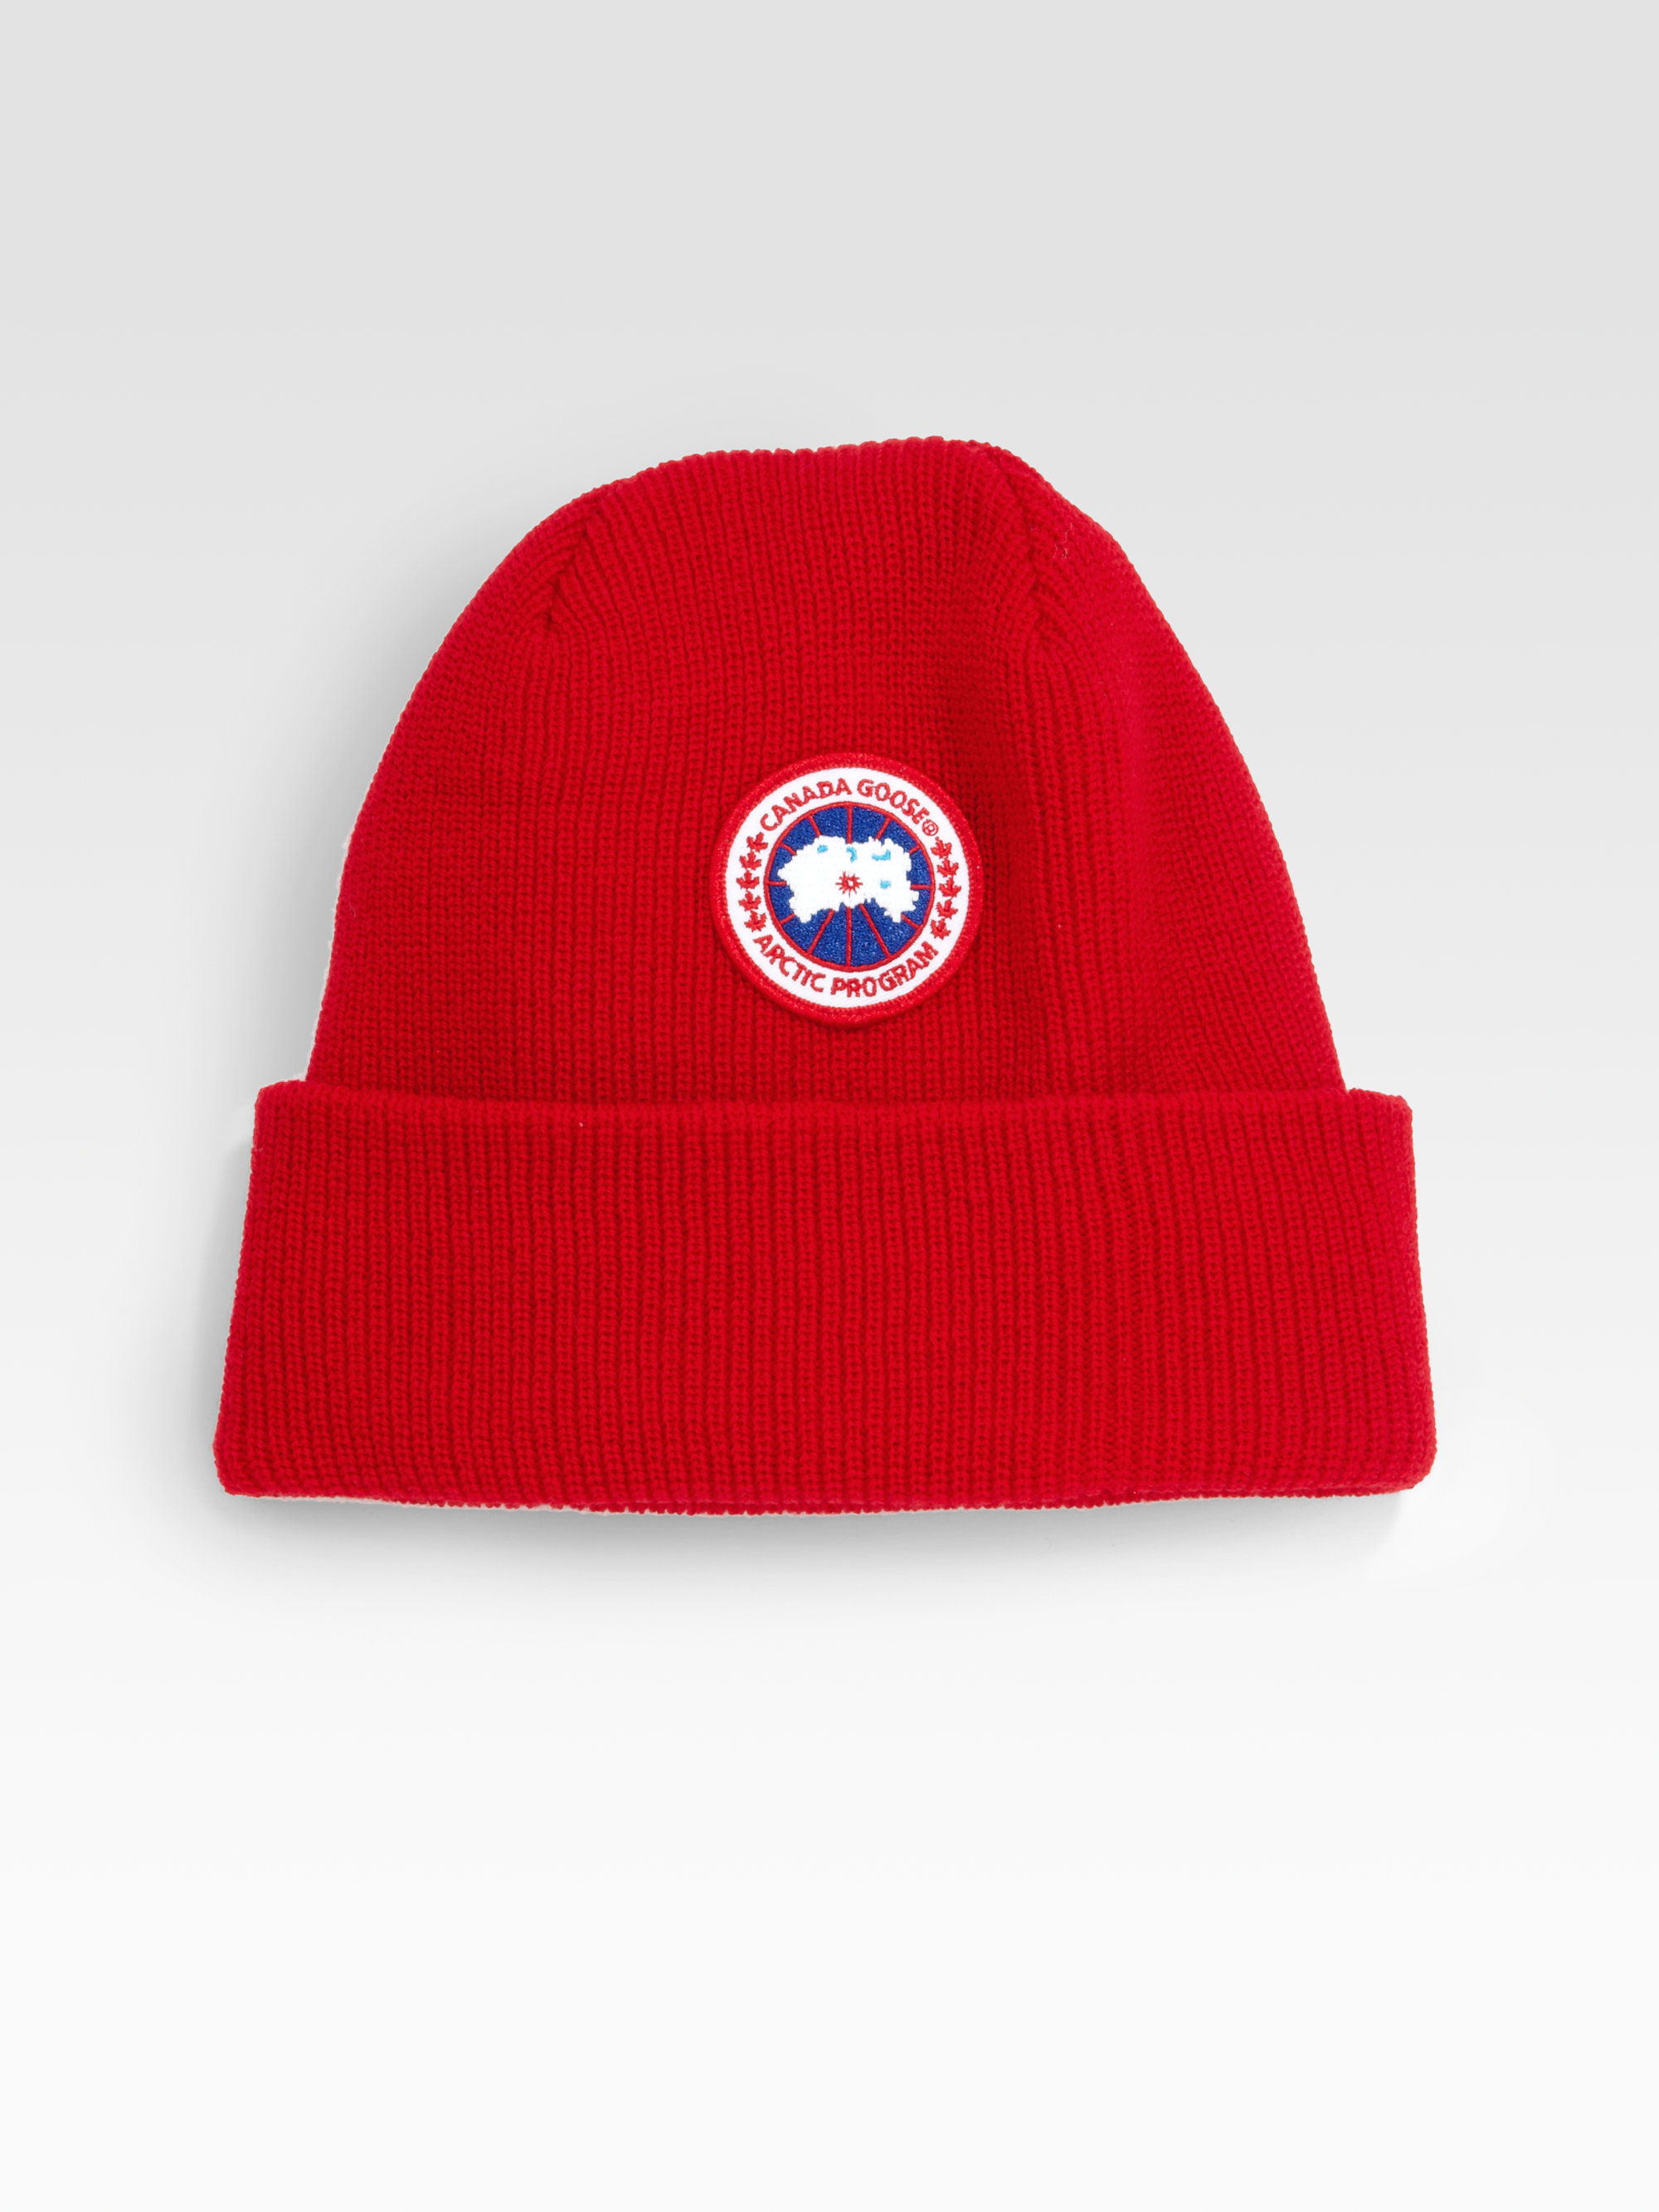 192a502ce76 Lyst - Canada Goose Merino Wool Watch Cap in Red